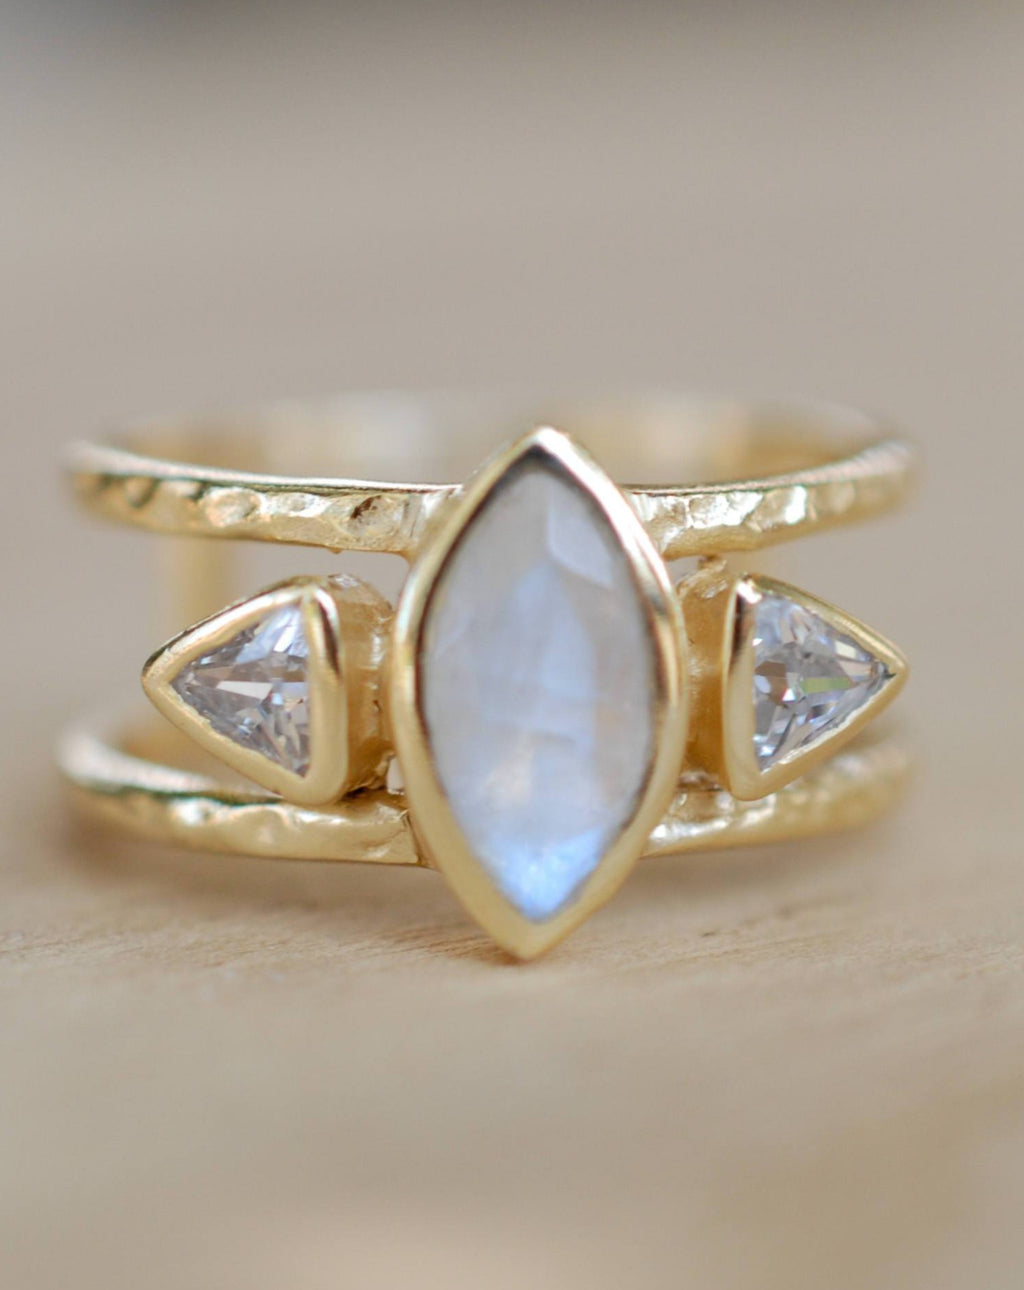 Moonstone & White Topaz Ring * Gold Vermeil Ring * Statement Ring *Gemstone Ring * Labradorite * Bridal Ring *Wedding Ring  * BJR149